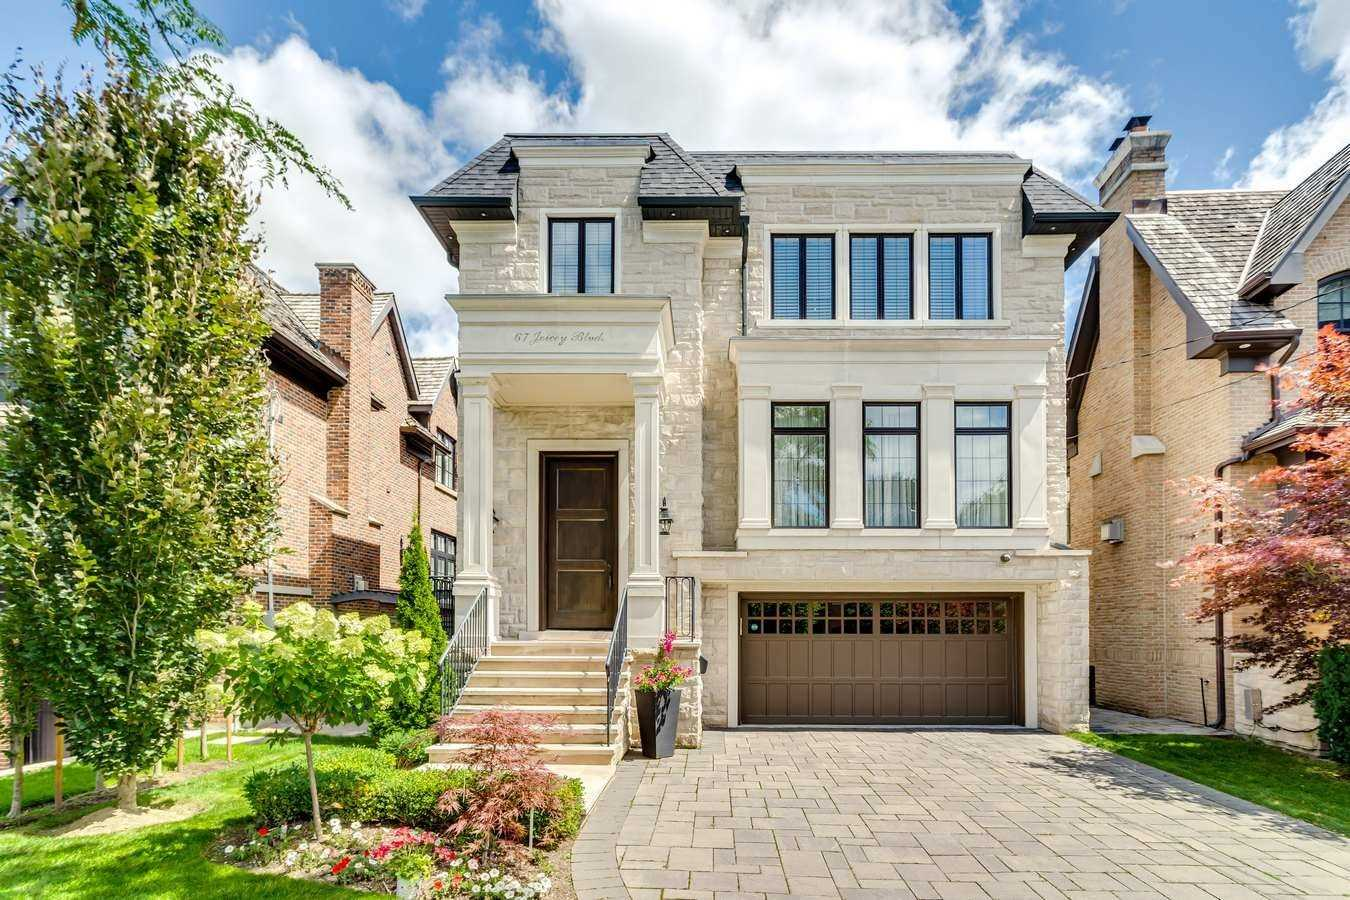 67 Joicey Blvd, Toronto, Ontario M5M2T2, 4 Bedrooms Bedrooms, 9 Rooms Rooms,5 BathroomsBathrooms,Detached,For Sale,Joicey,C5327372